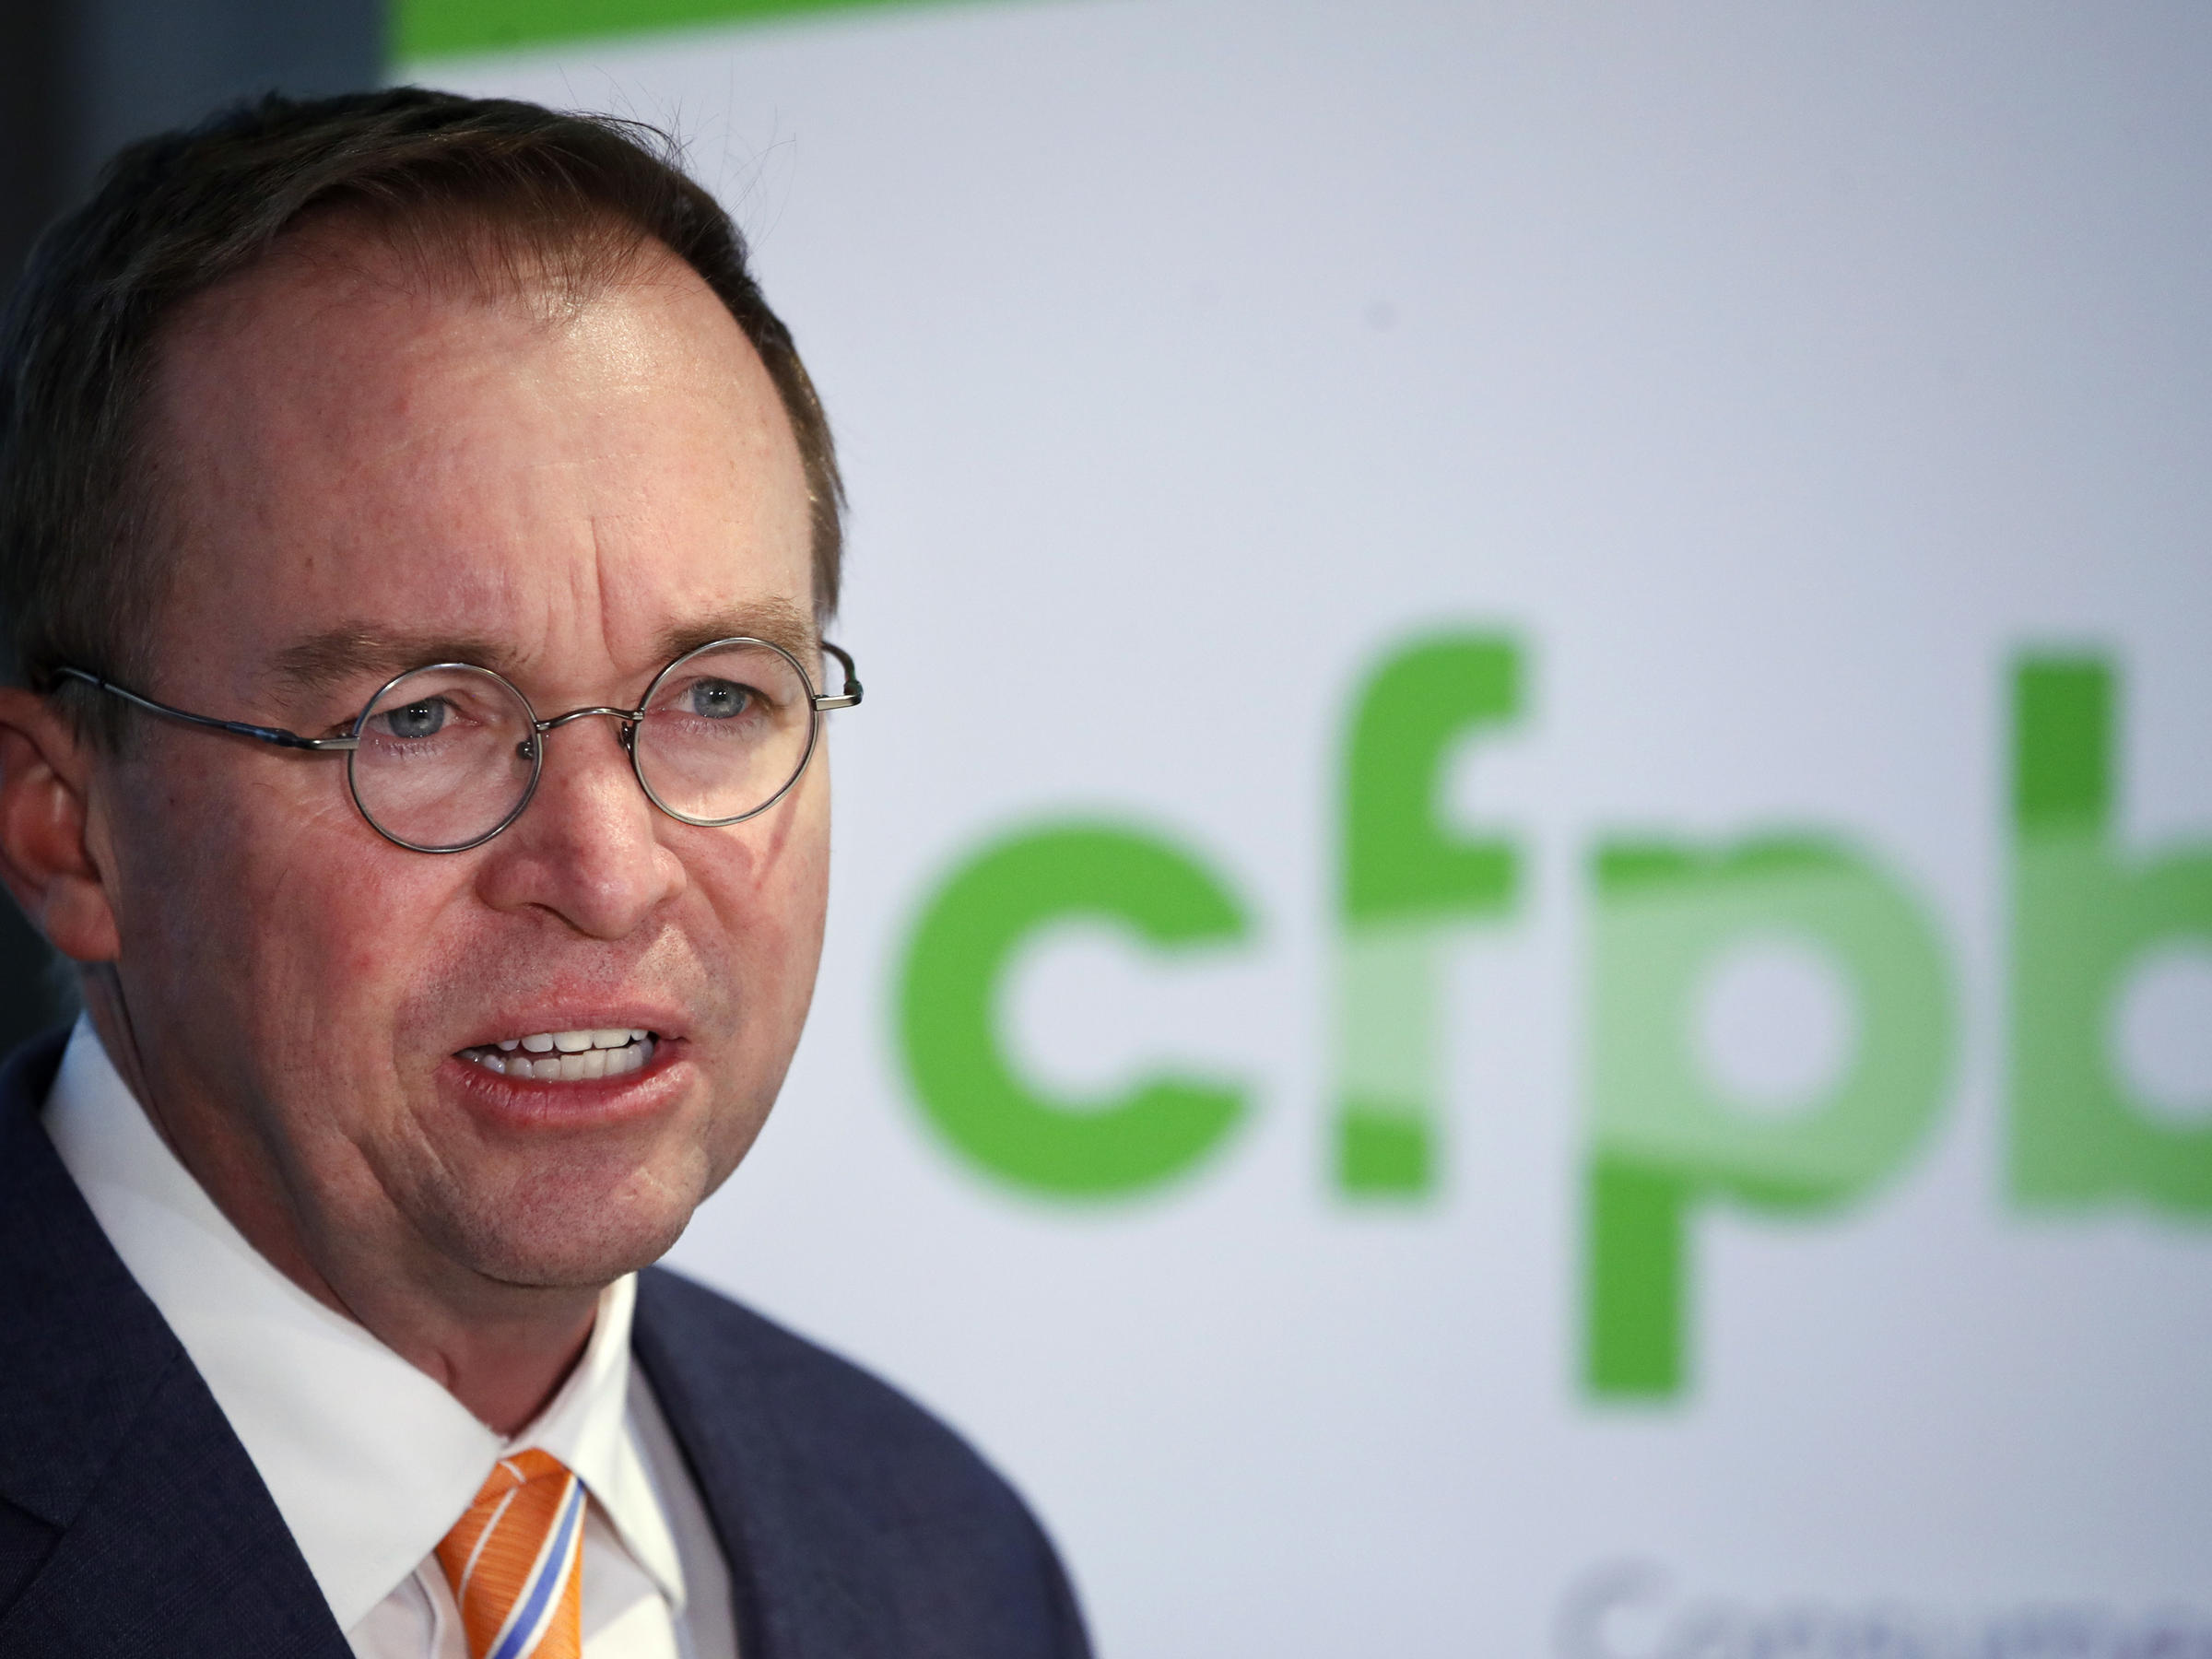 What does Mulvaney's appointment mean for the future of CFPB?